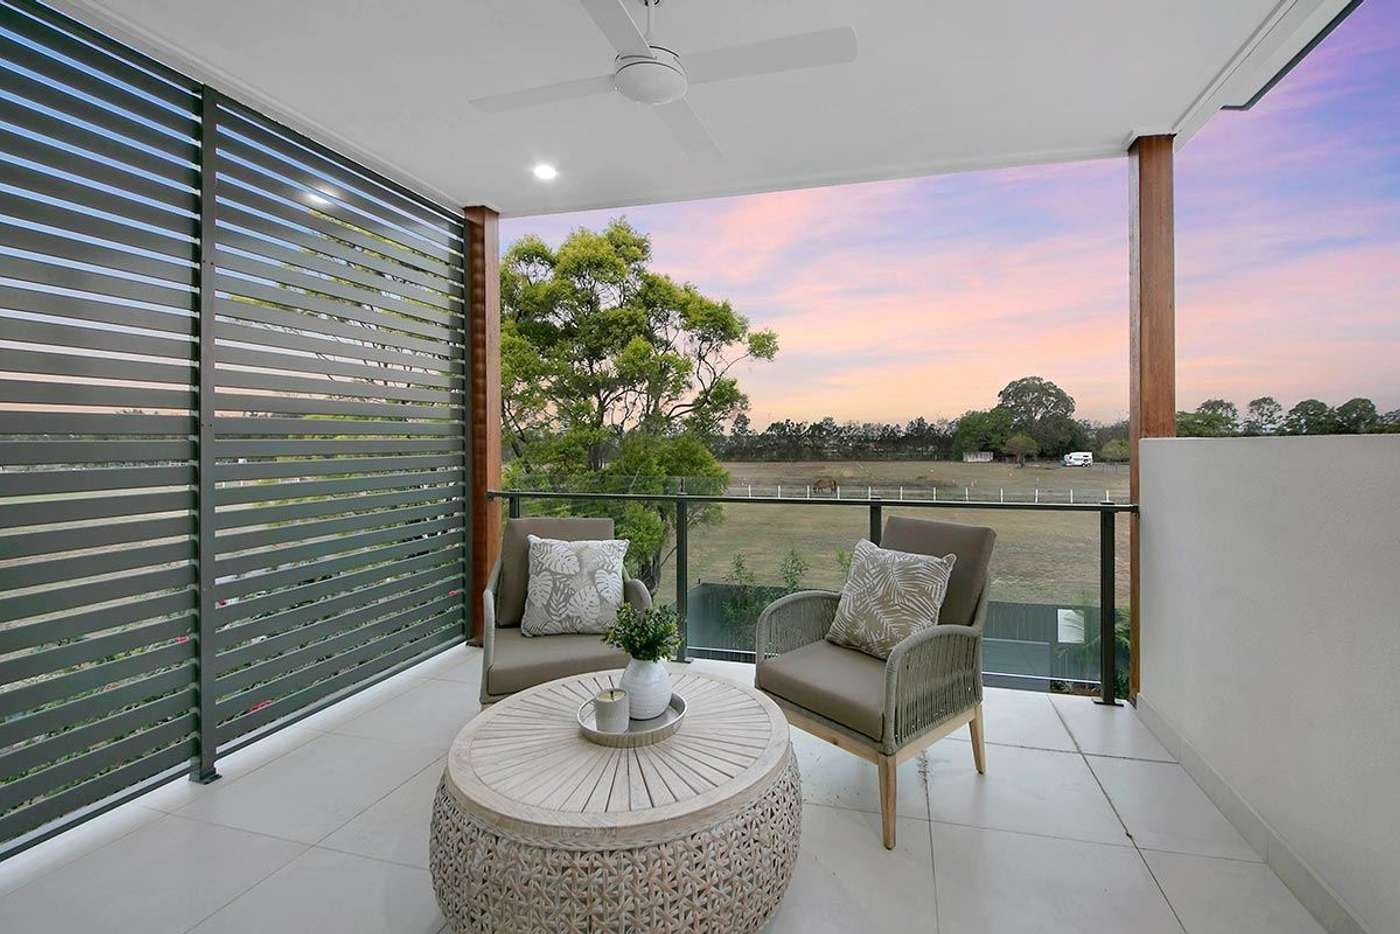 Sixth view of Homely house listing, 33 Ure Street, Hendra QLD 4011